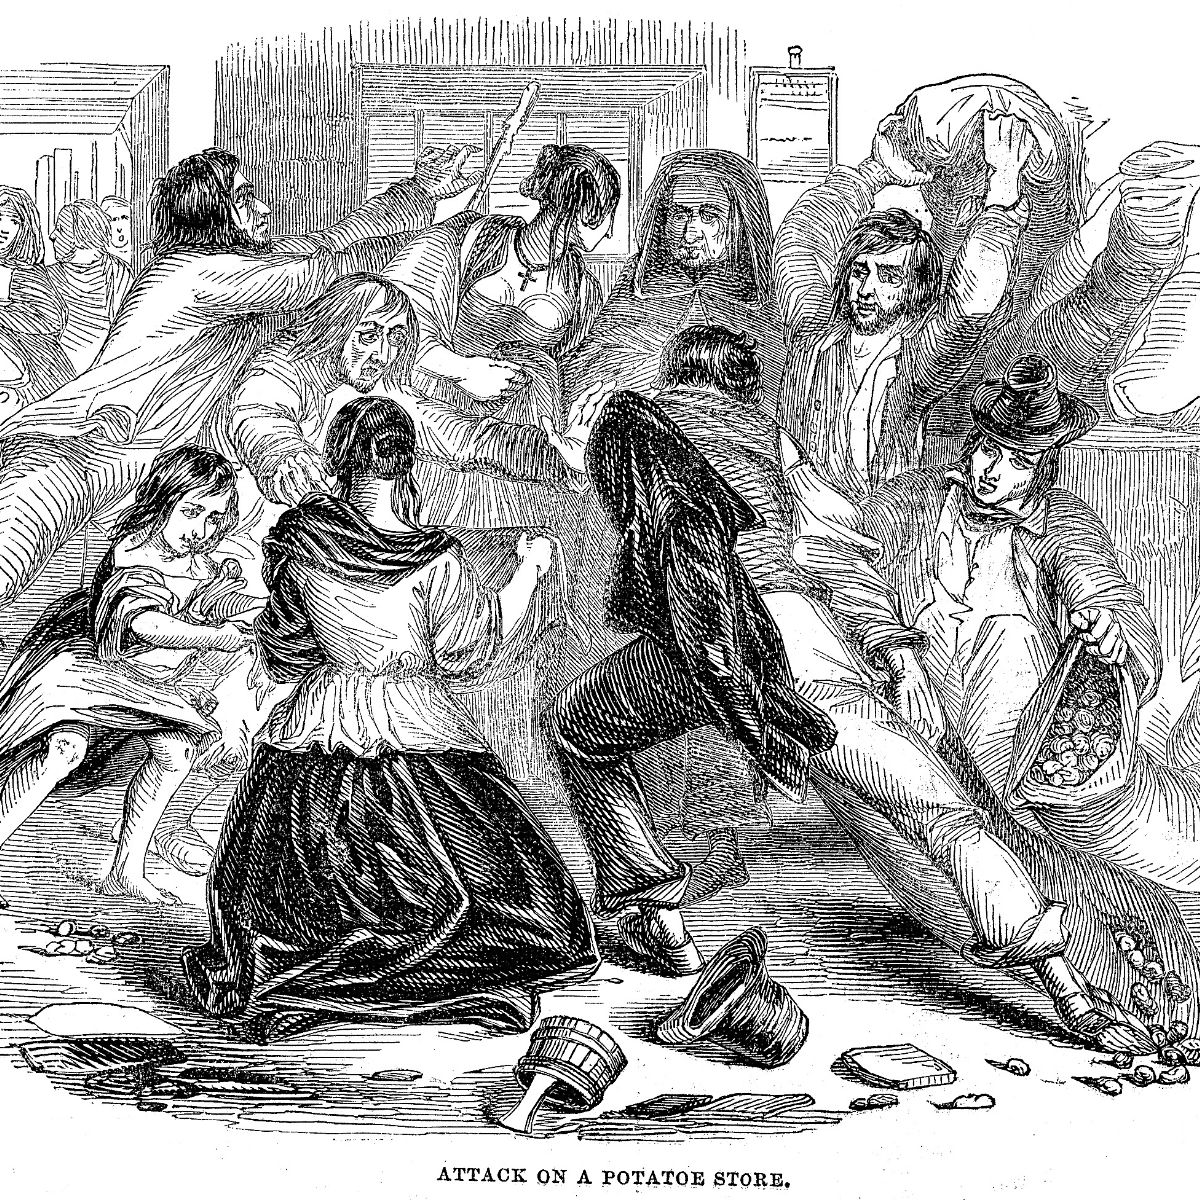 Black and white vintage sketch of people rioting and stealing grain